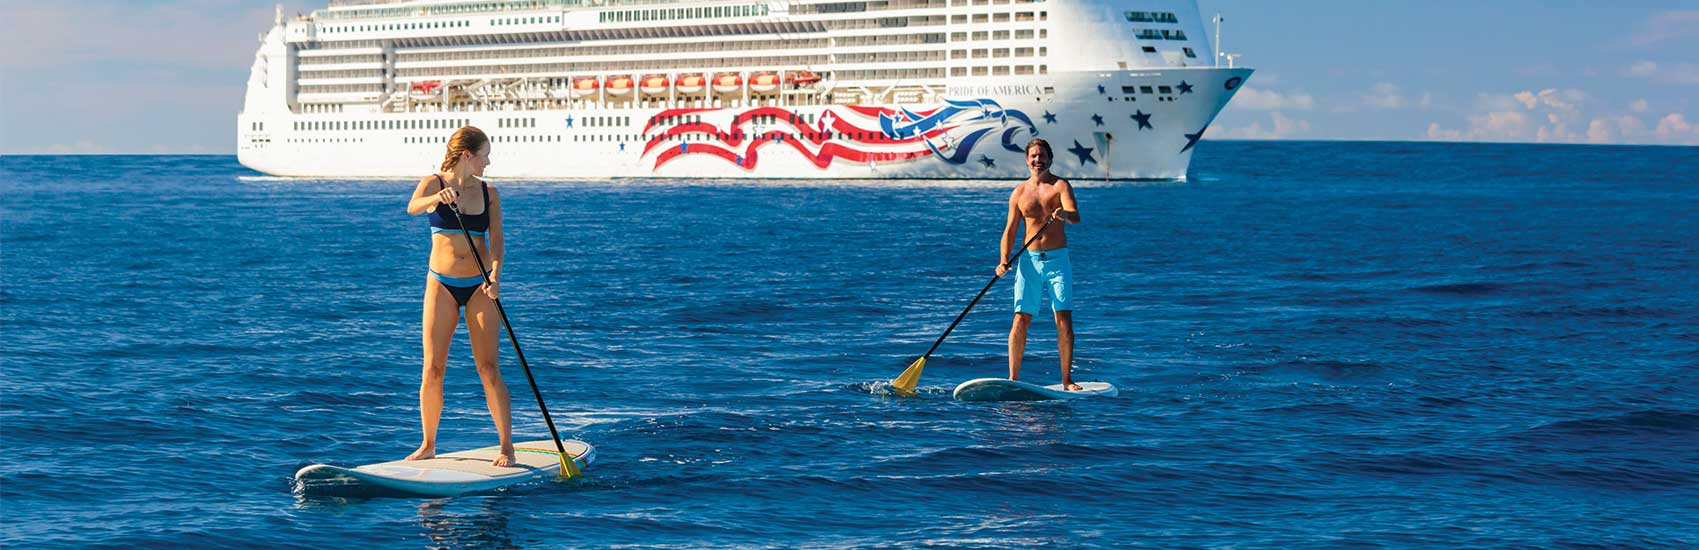 Free at Sea in Hawaii with Norwegian Cruise Line! 2